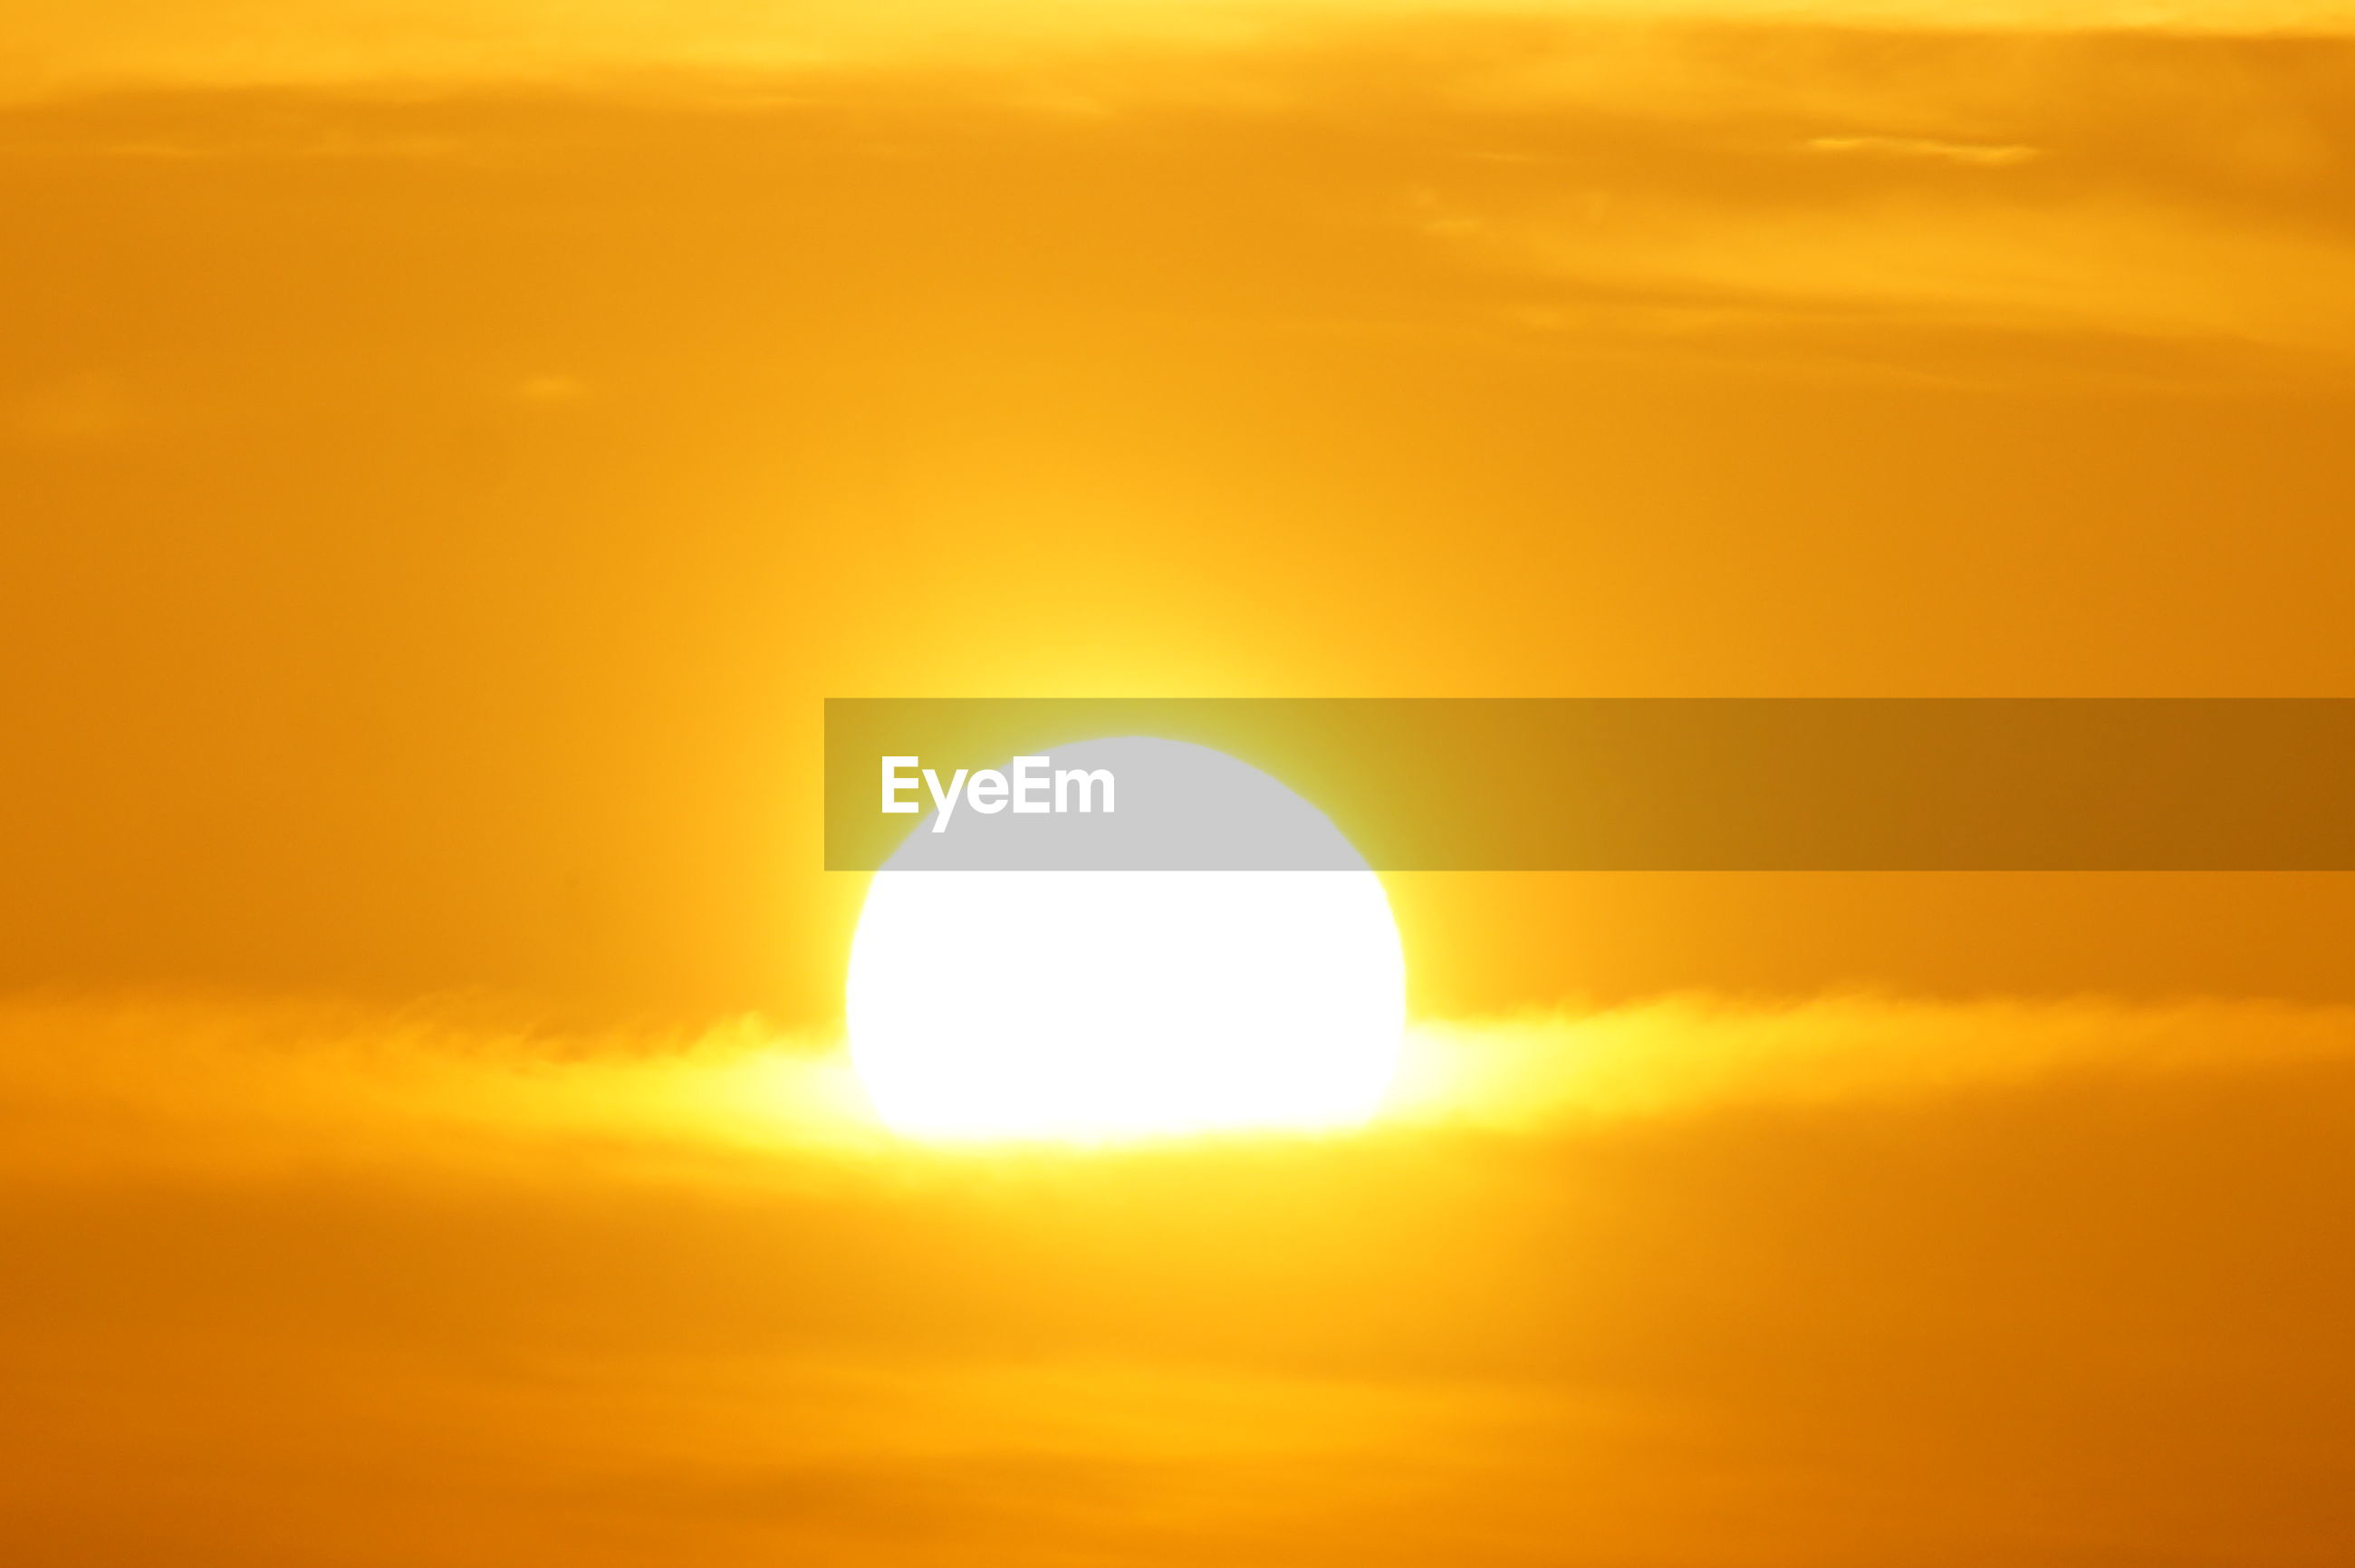 sun, yellow, sunset, orange color, beauty in nature, circle, sky, scenics, cloud - sky, nature, sunlight, bright, solar eclipse, outdoors, technology, no people, summer, alternative energy, close-up, day